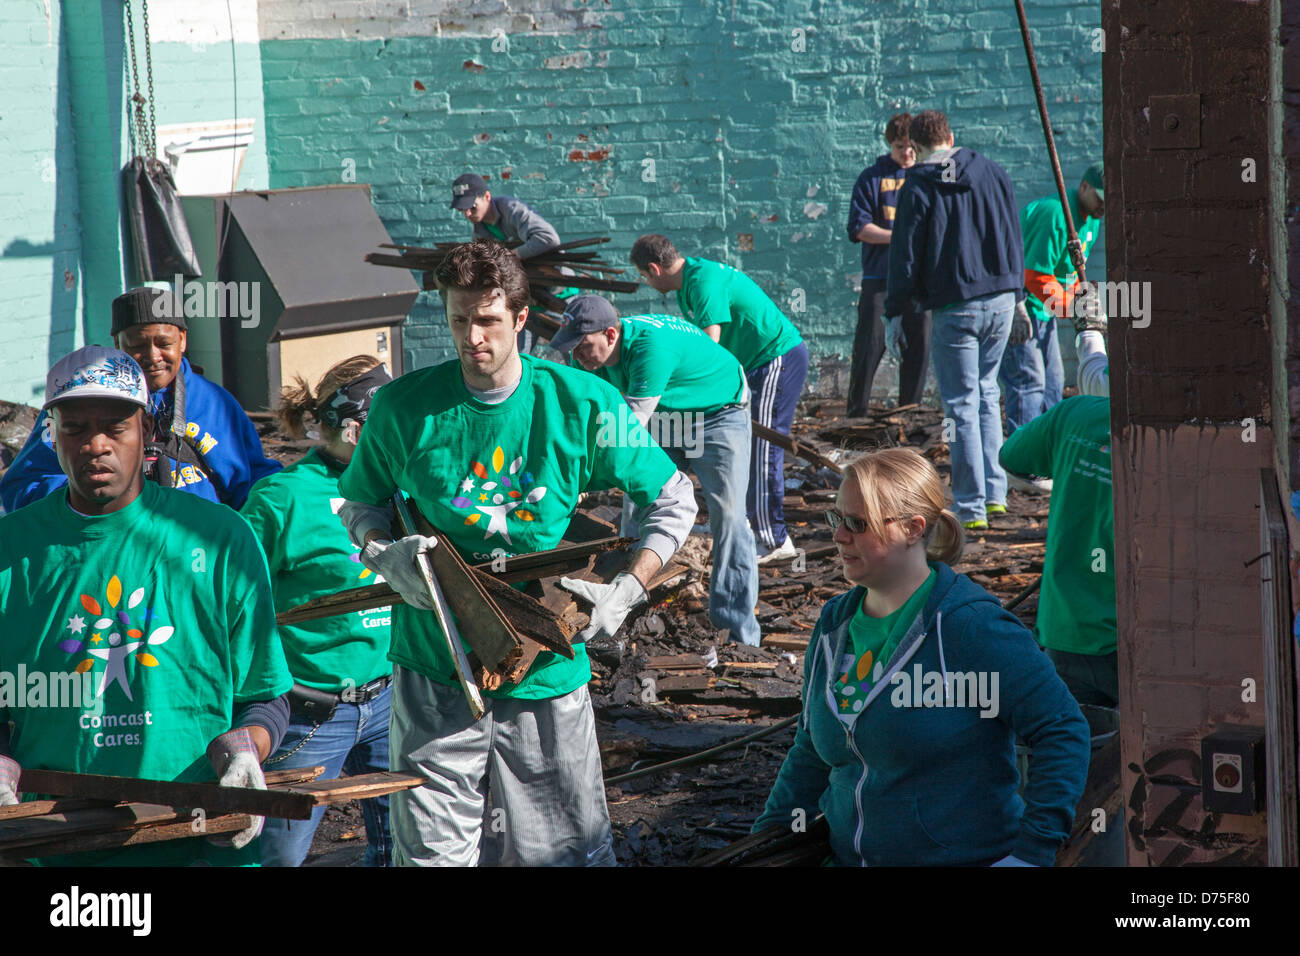 Volunteers Help Renovate Building for Community Organization - Stock Image